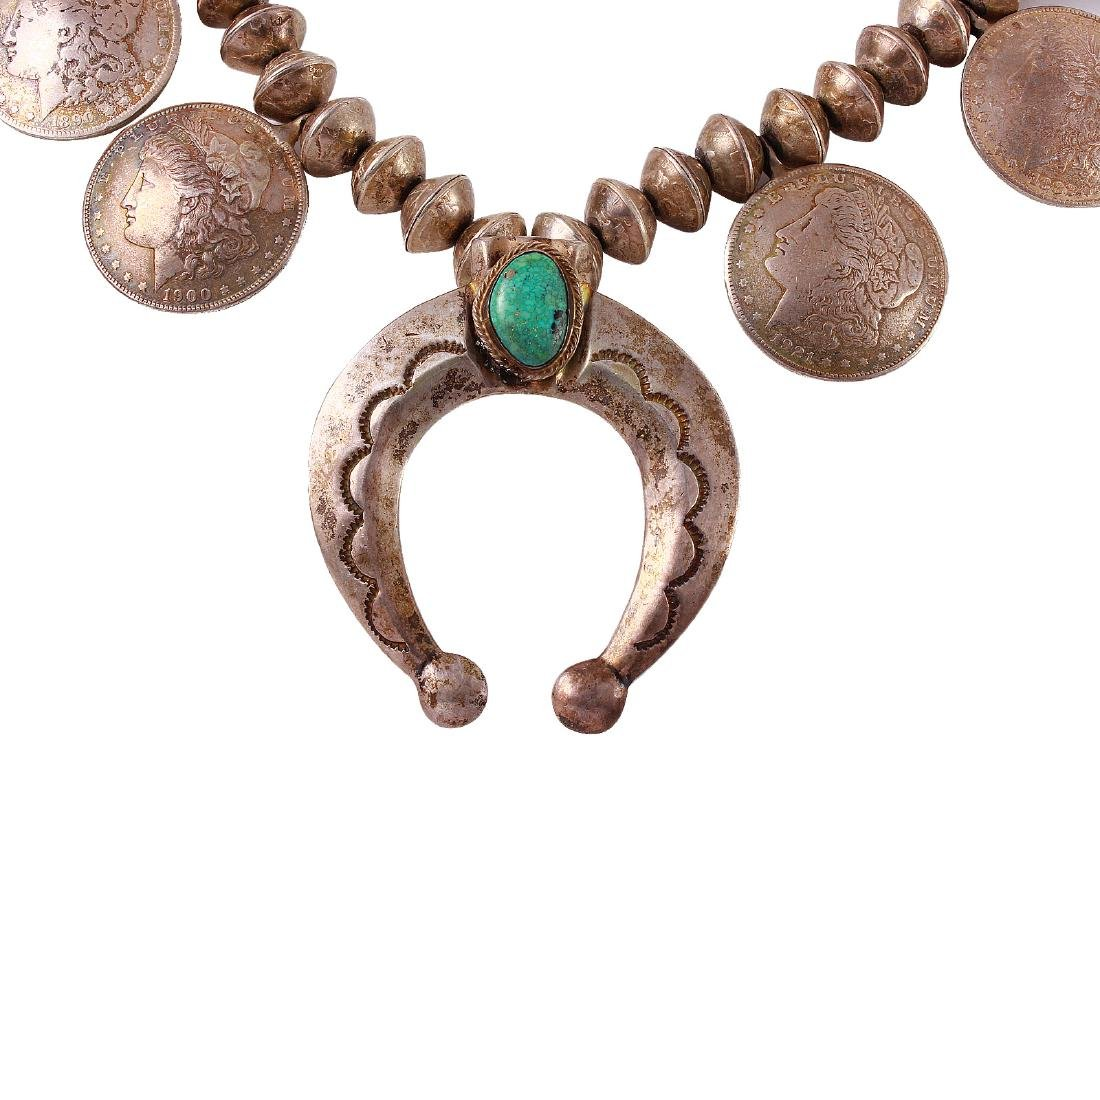 Handmade Coin Sterling Silver Navajo Turquoise Necklace